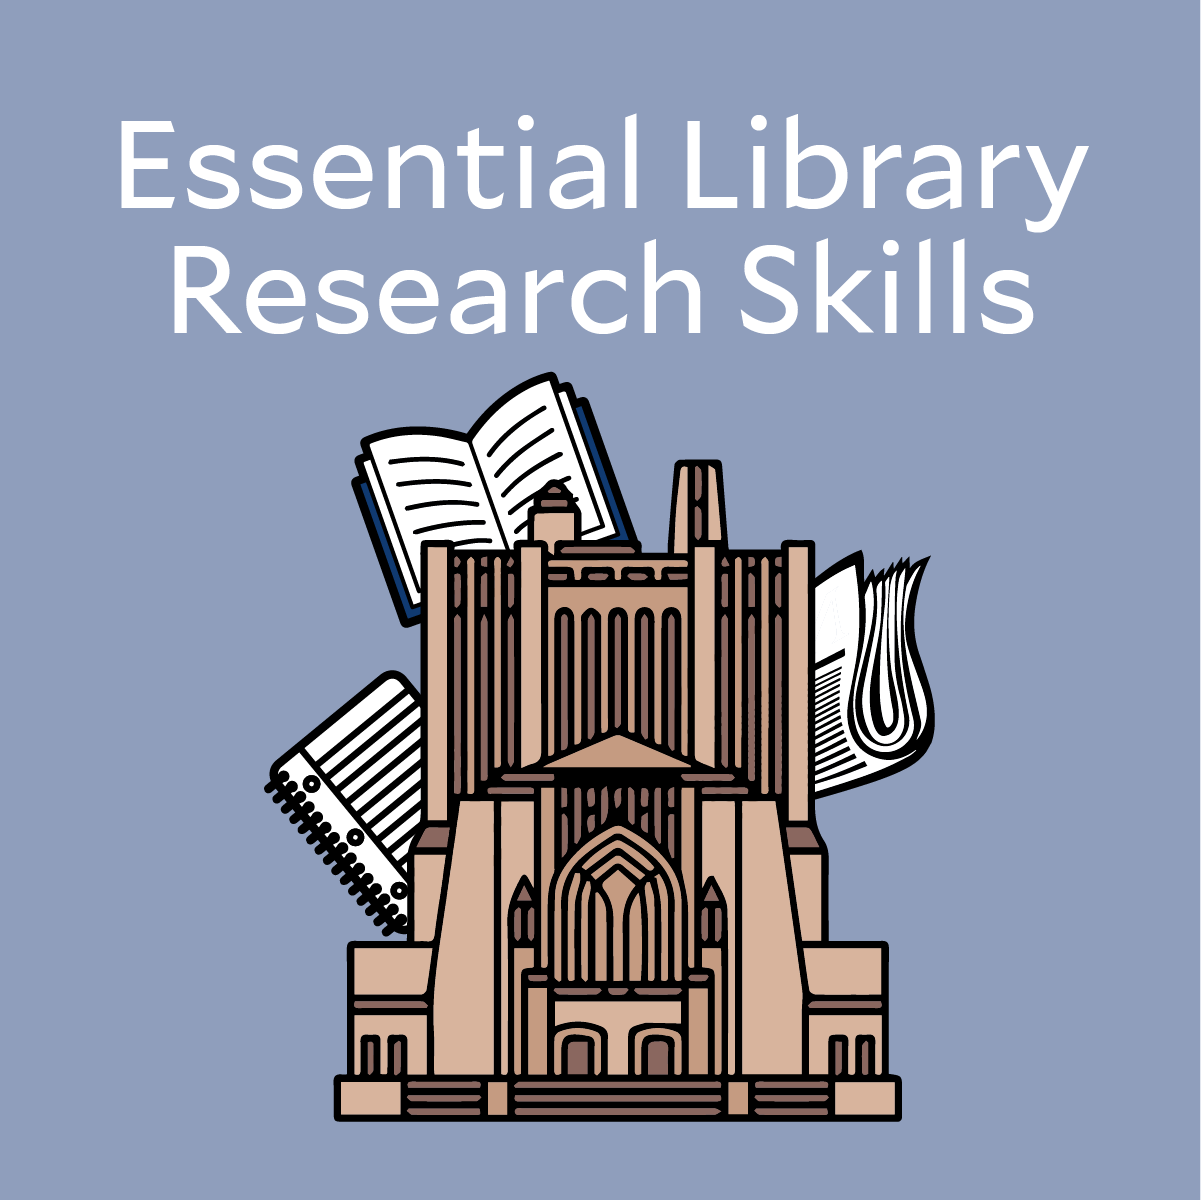 Essential Library Research Skills